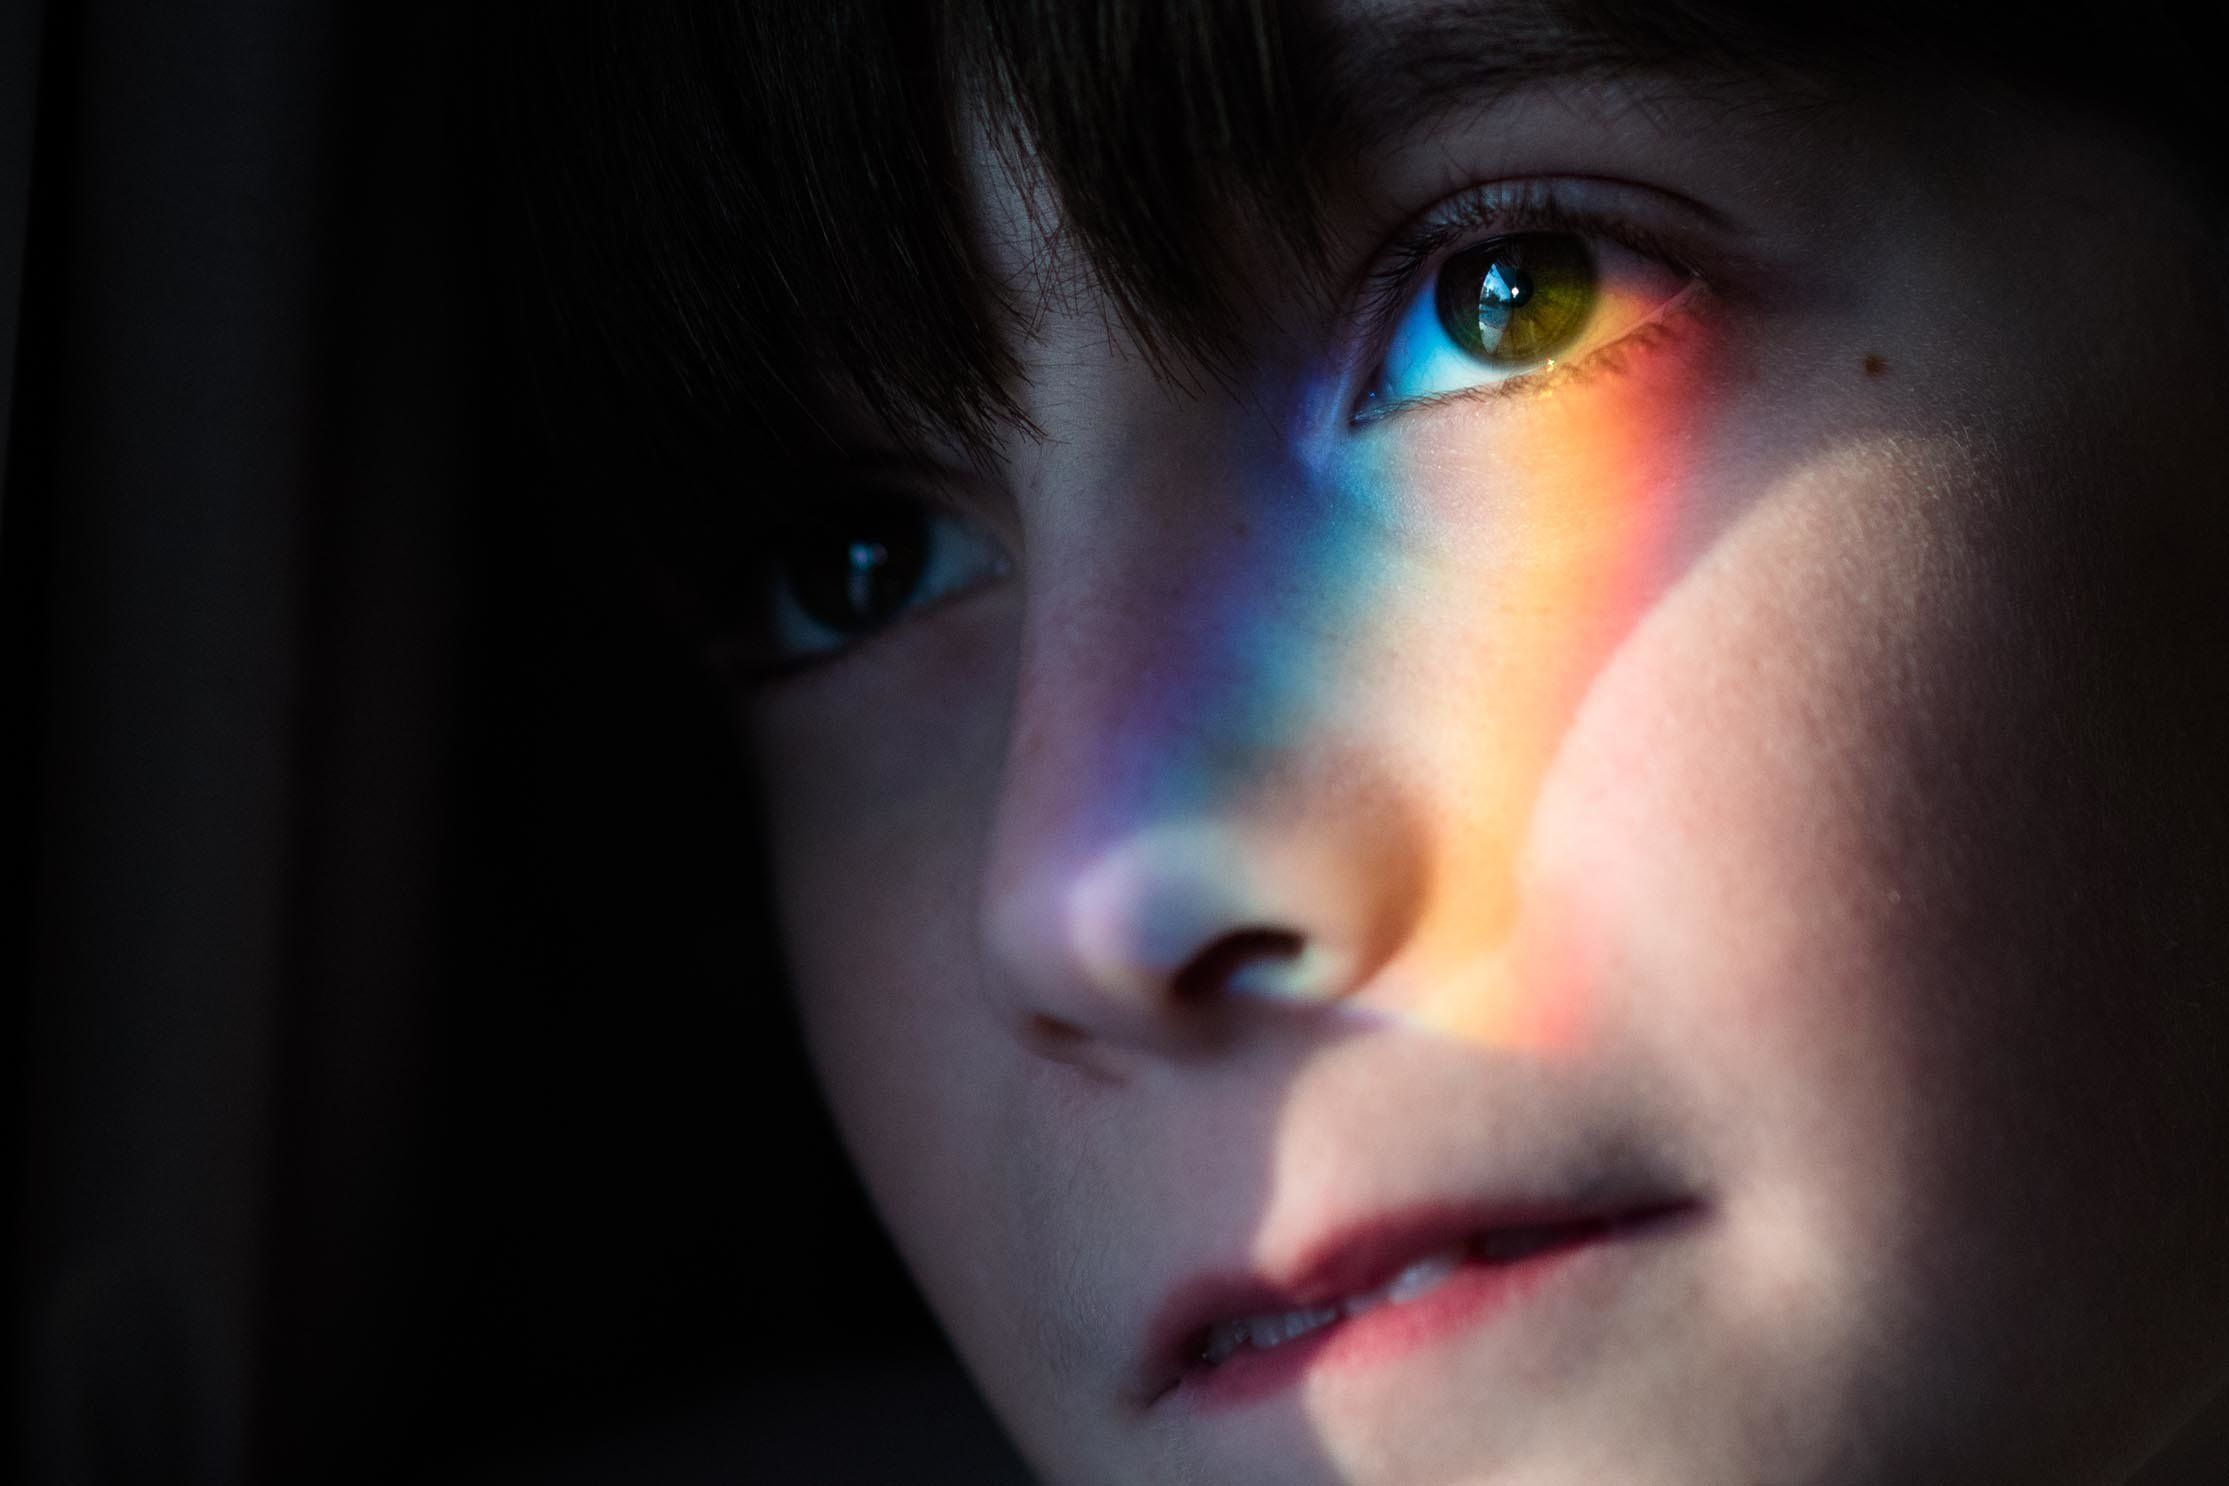 Kate Miller-Wilson told The Huffington Post some of the photos she has taken of her 10-year-old son Eian, who has autism